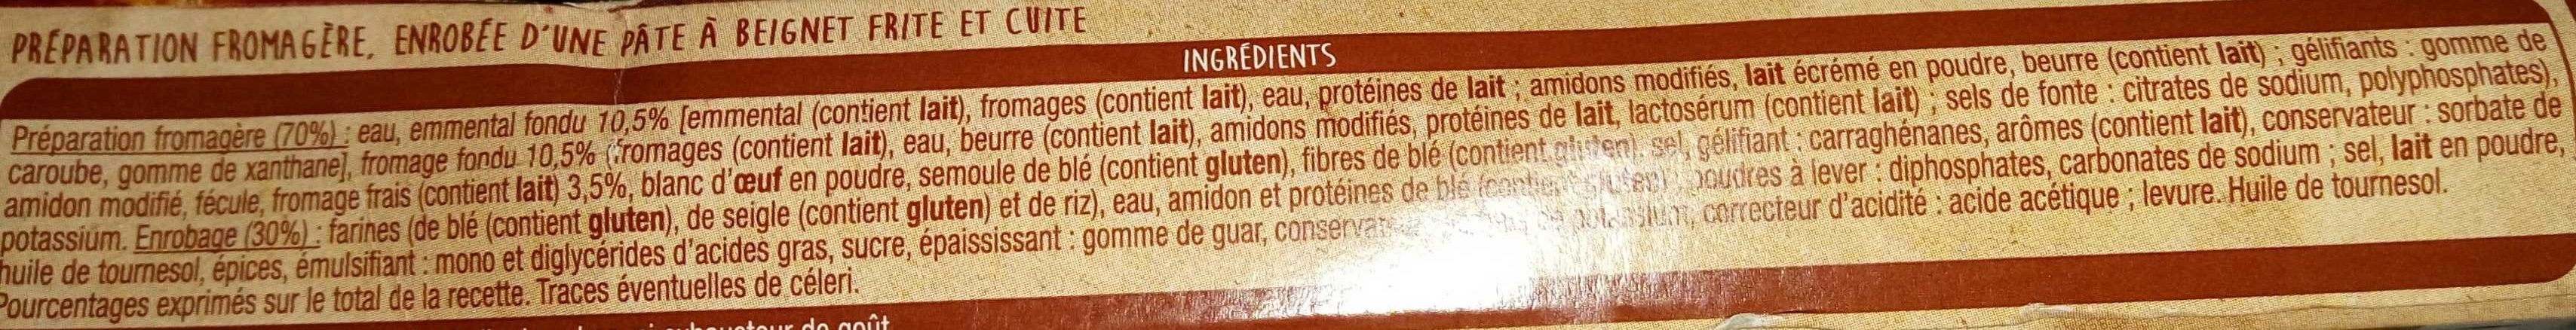 Nuggets Fromage - Inhaltsstoffe - fr